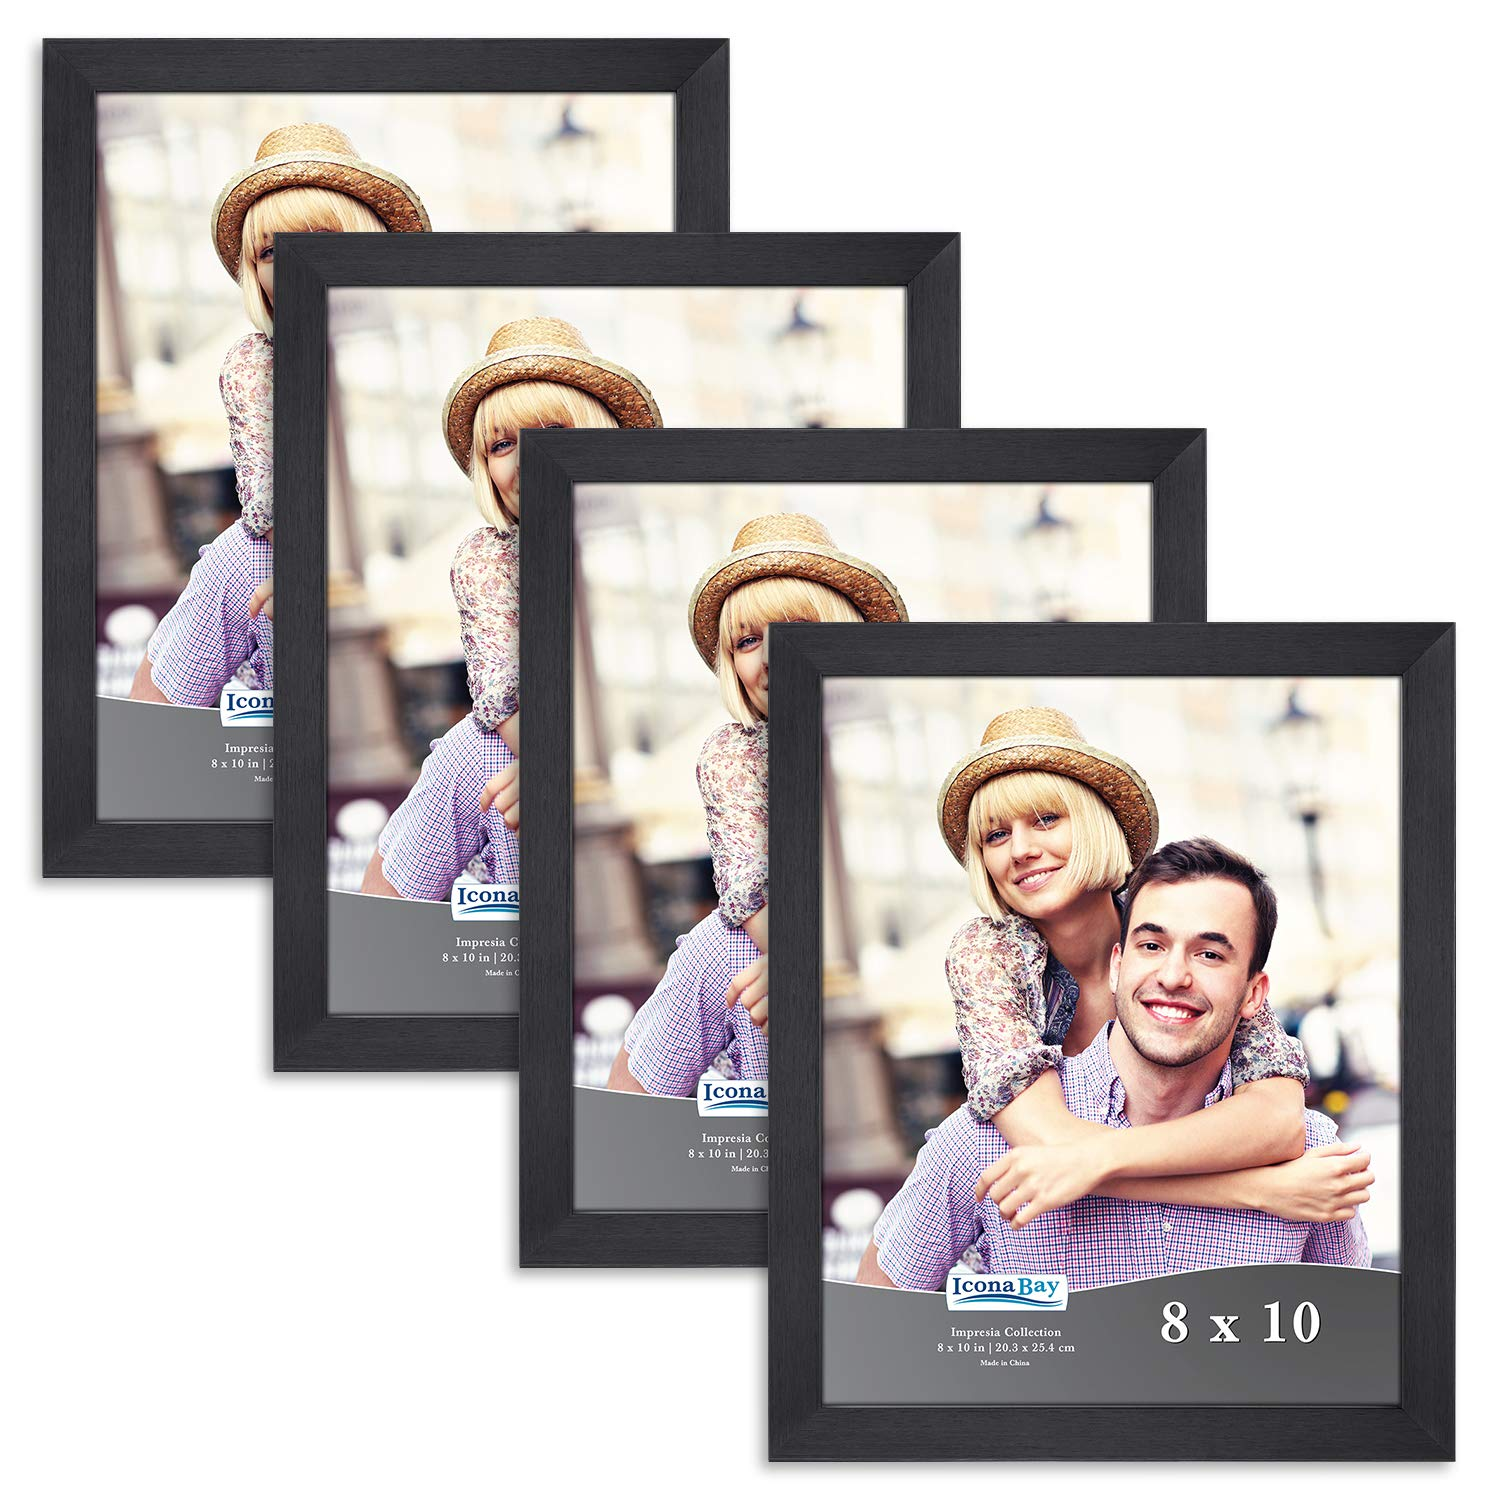 Icona Bay 8x10 Picture Frame Pack (4 Pack, Black) 8 x 10 Frame, Tabletop and Wall Hang Hardware Included with Photo Frames, Impresia Collection by Icona Bay (Image #1)